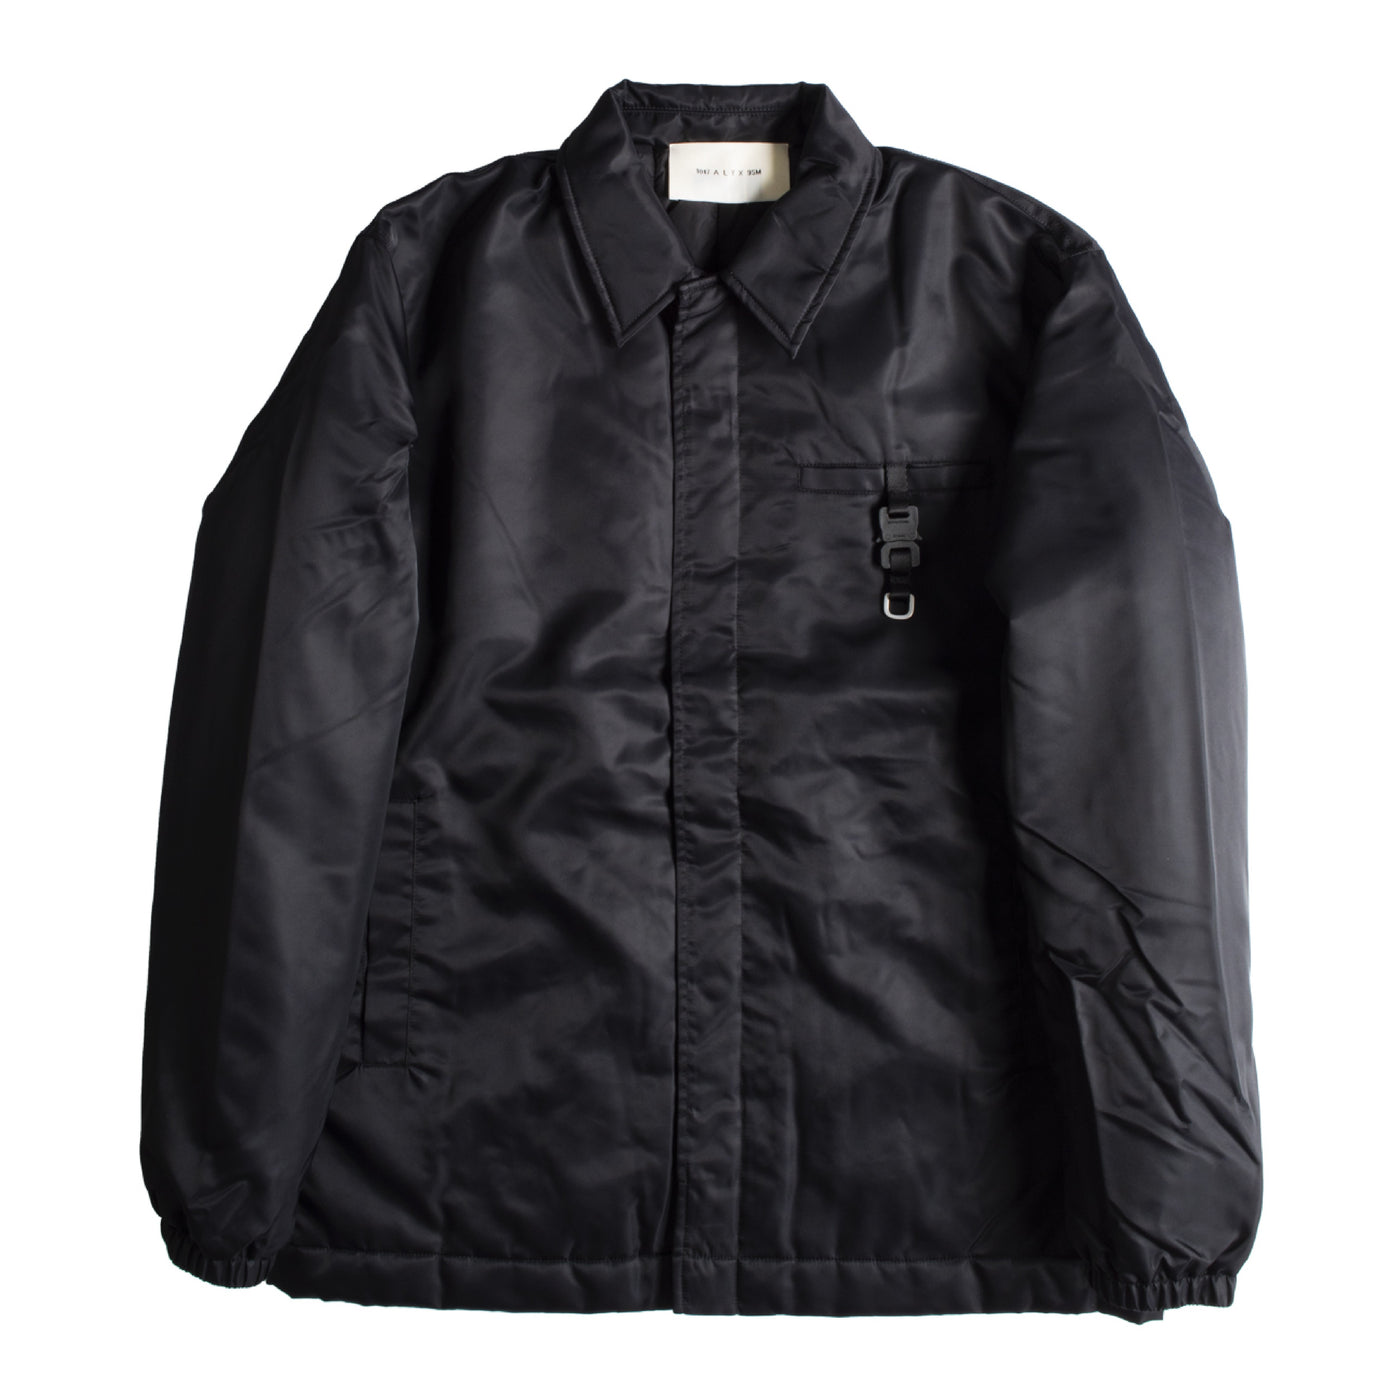 Load image into Gallery viewer, 1017 ALYX 9SM JACKET BLACK